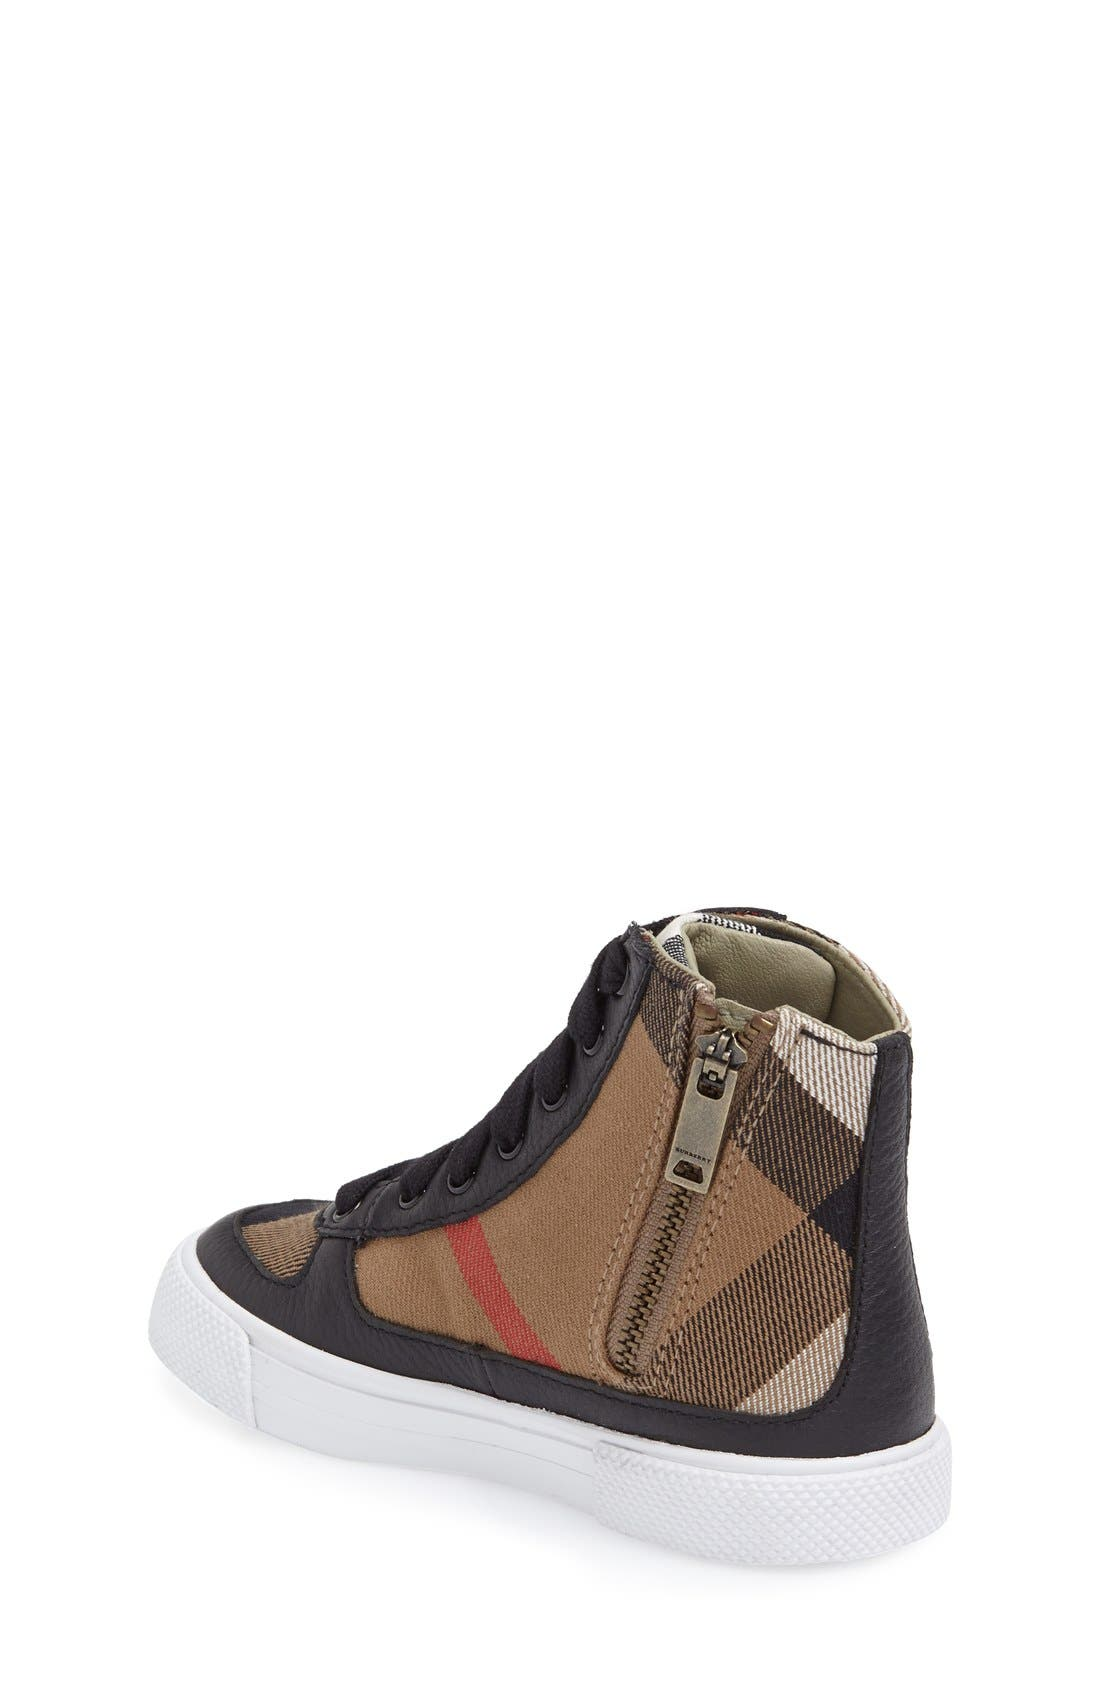 Alternate Image 2  - Burberry 'Merrison' High Top Sneaker (Walker, Toddler, Little Kid & Big Kid)